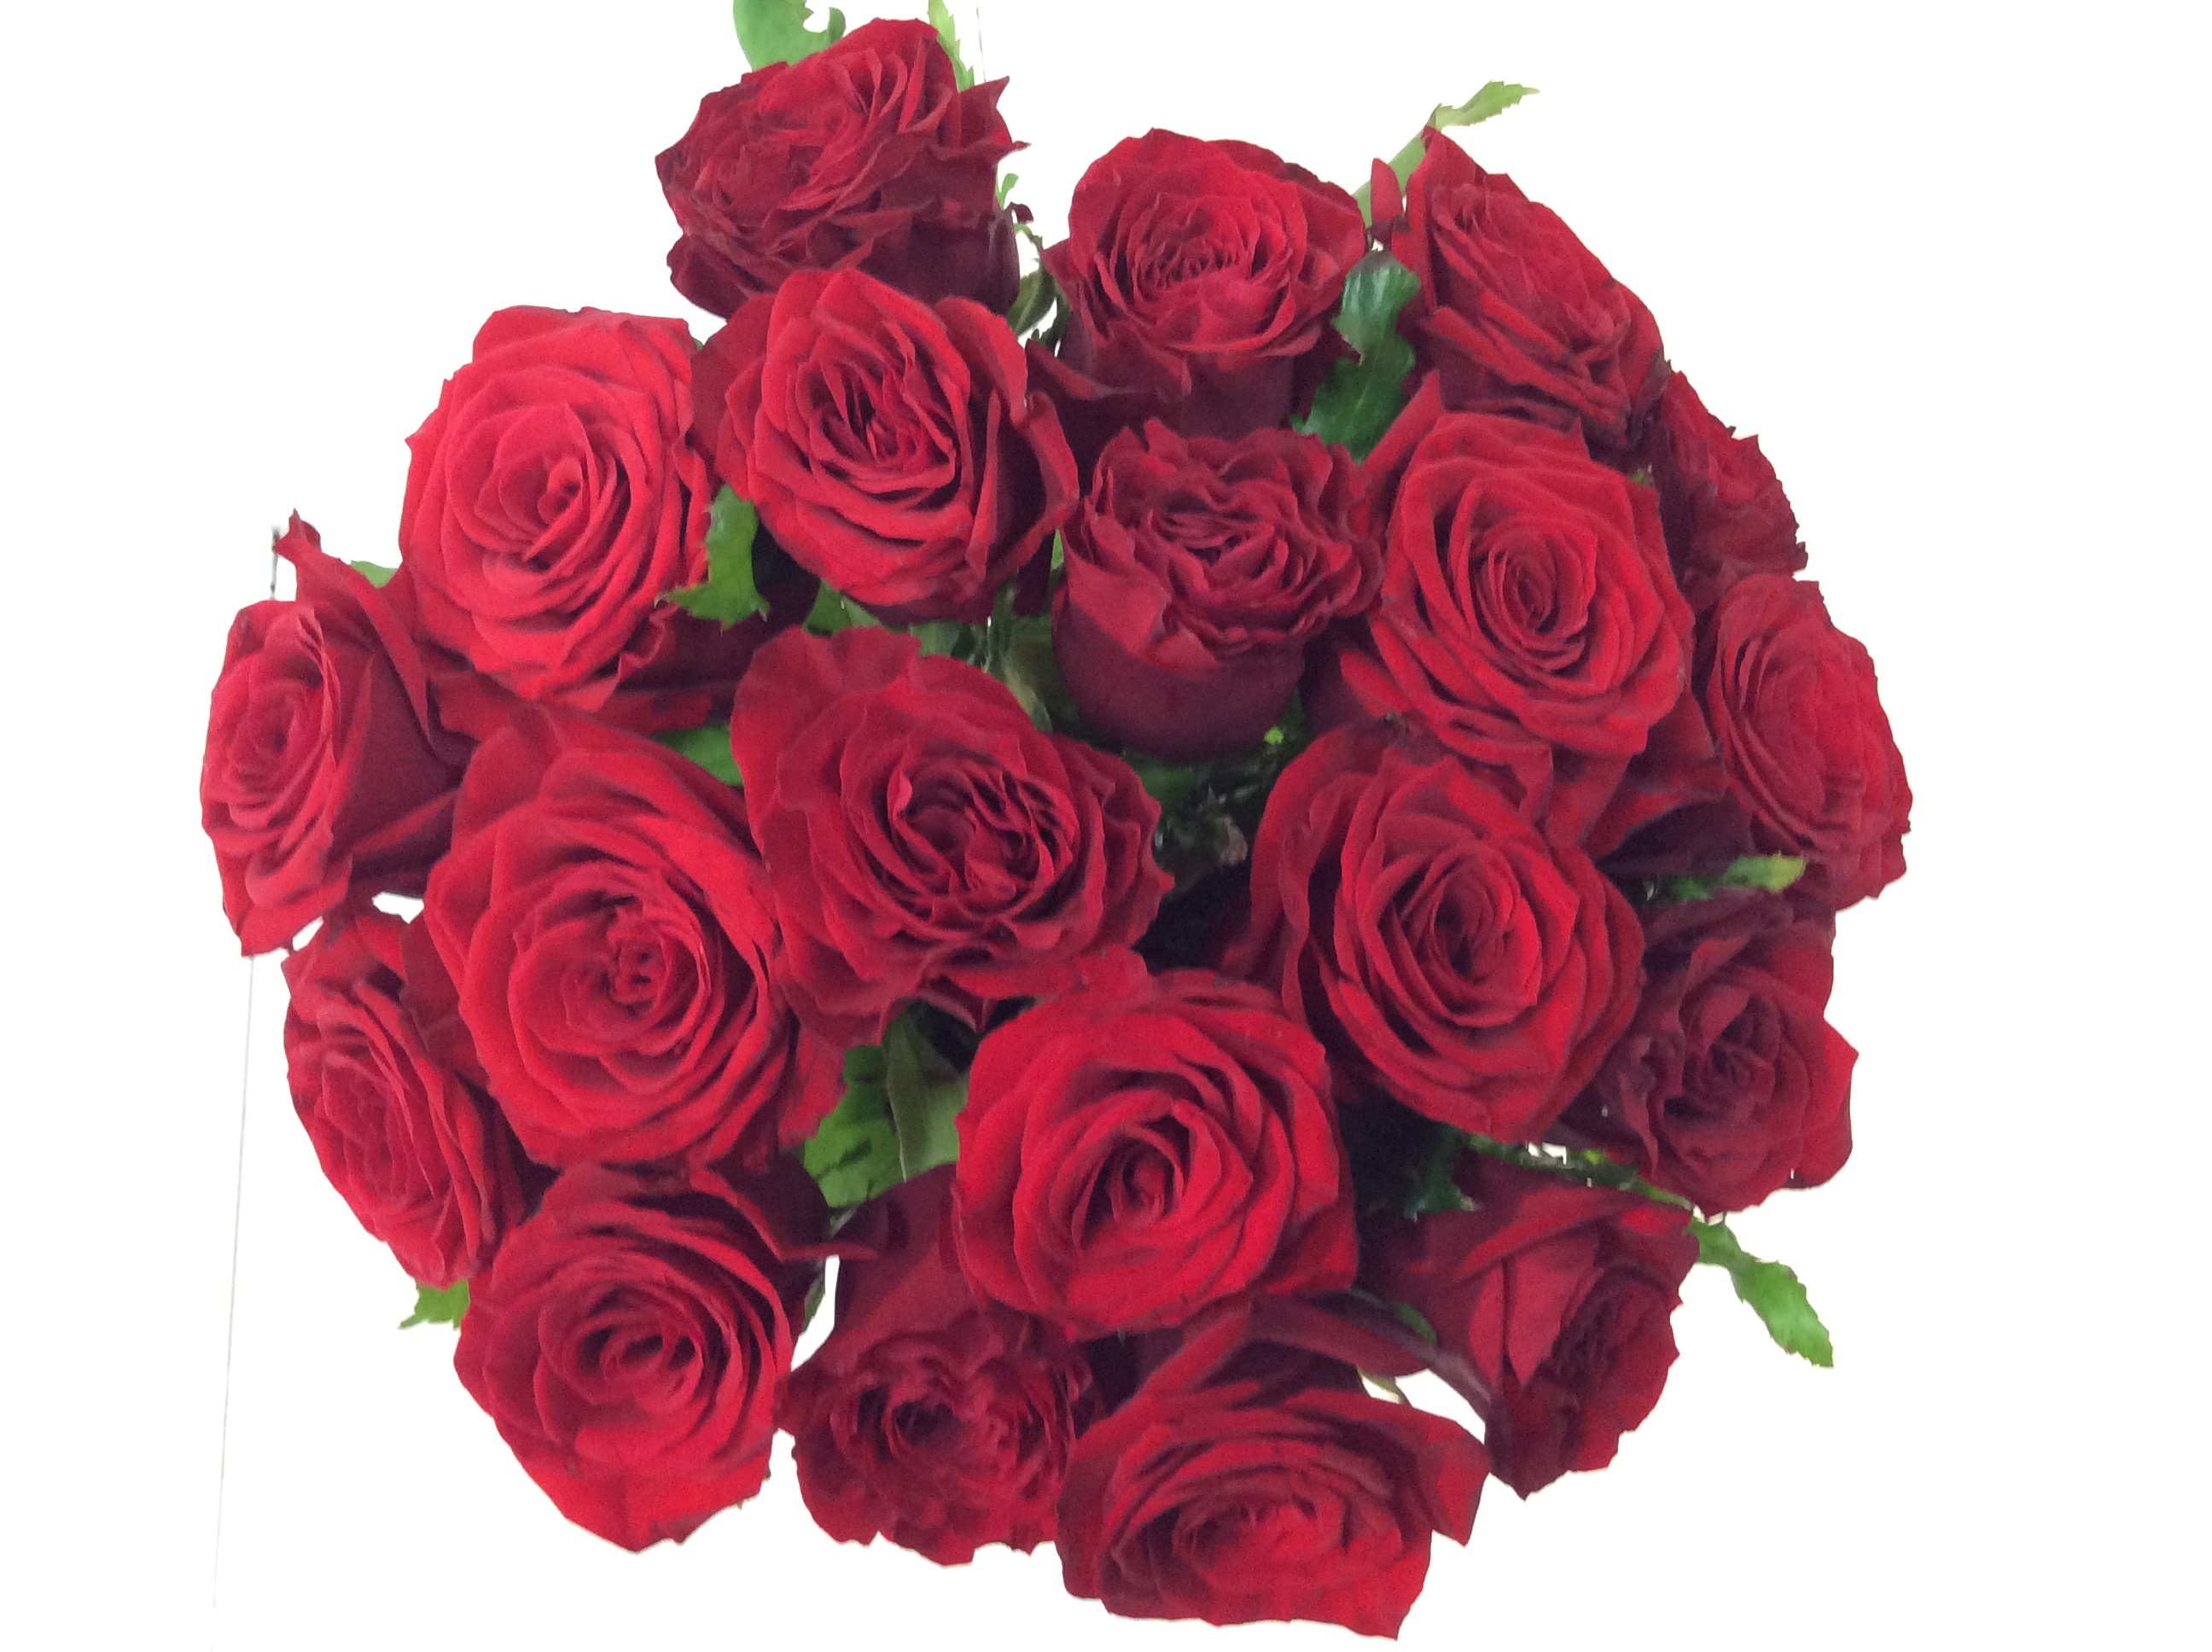 Special request flower bouquet flower wholesalers auckland special request flower bouquet izmirmasajfo